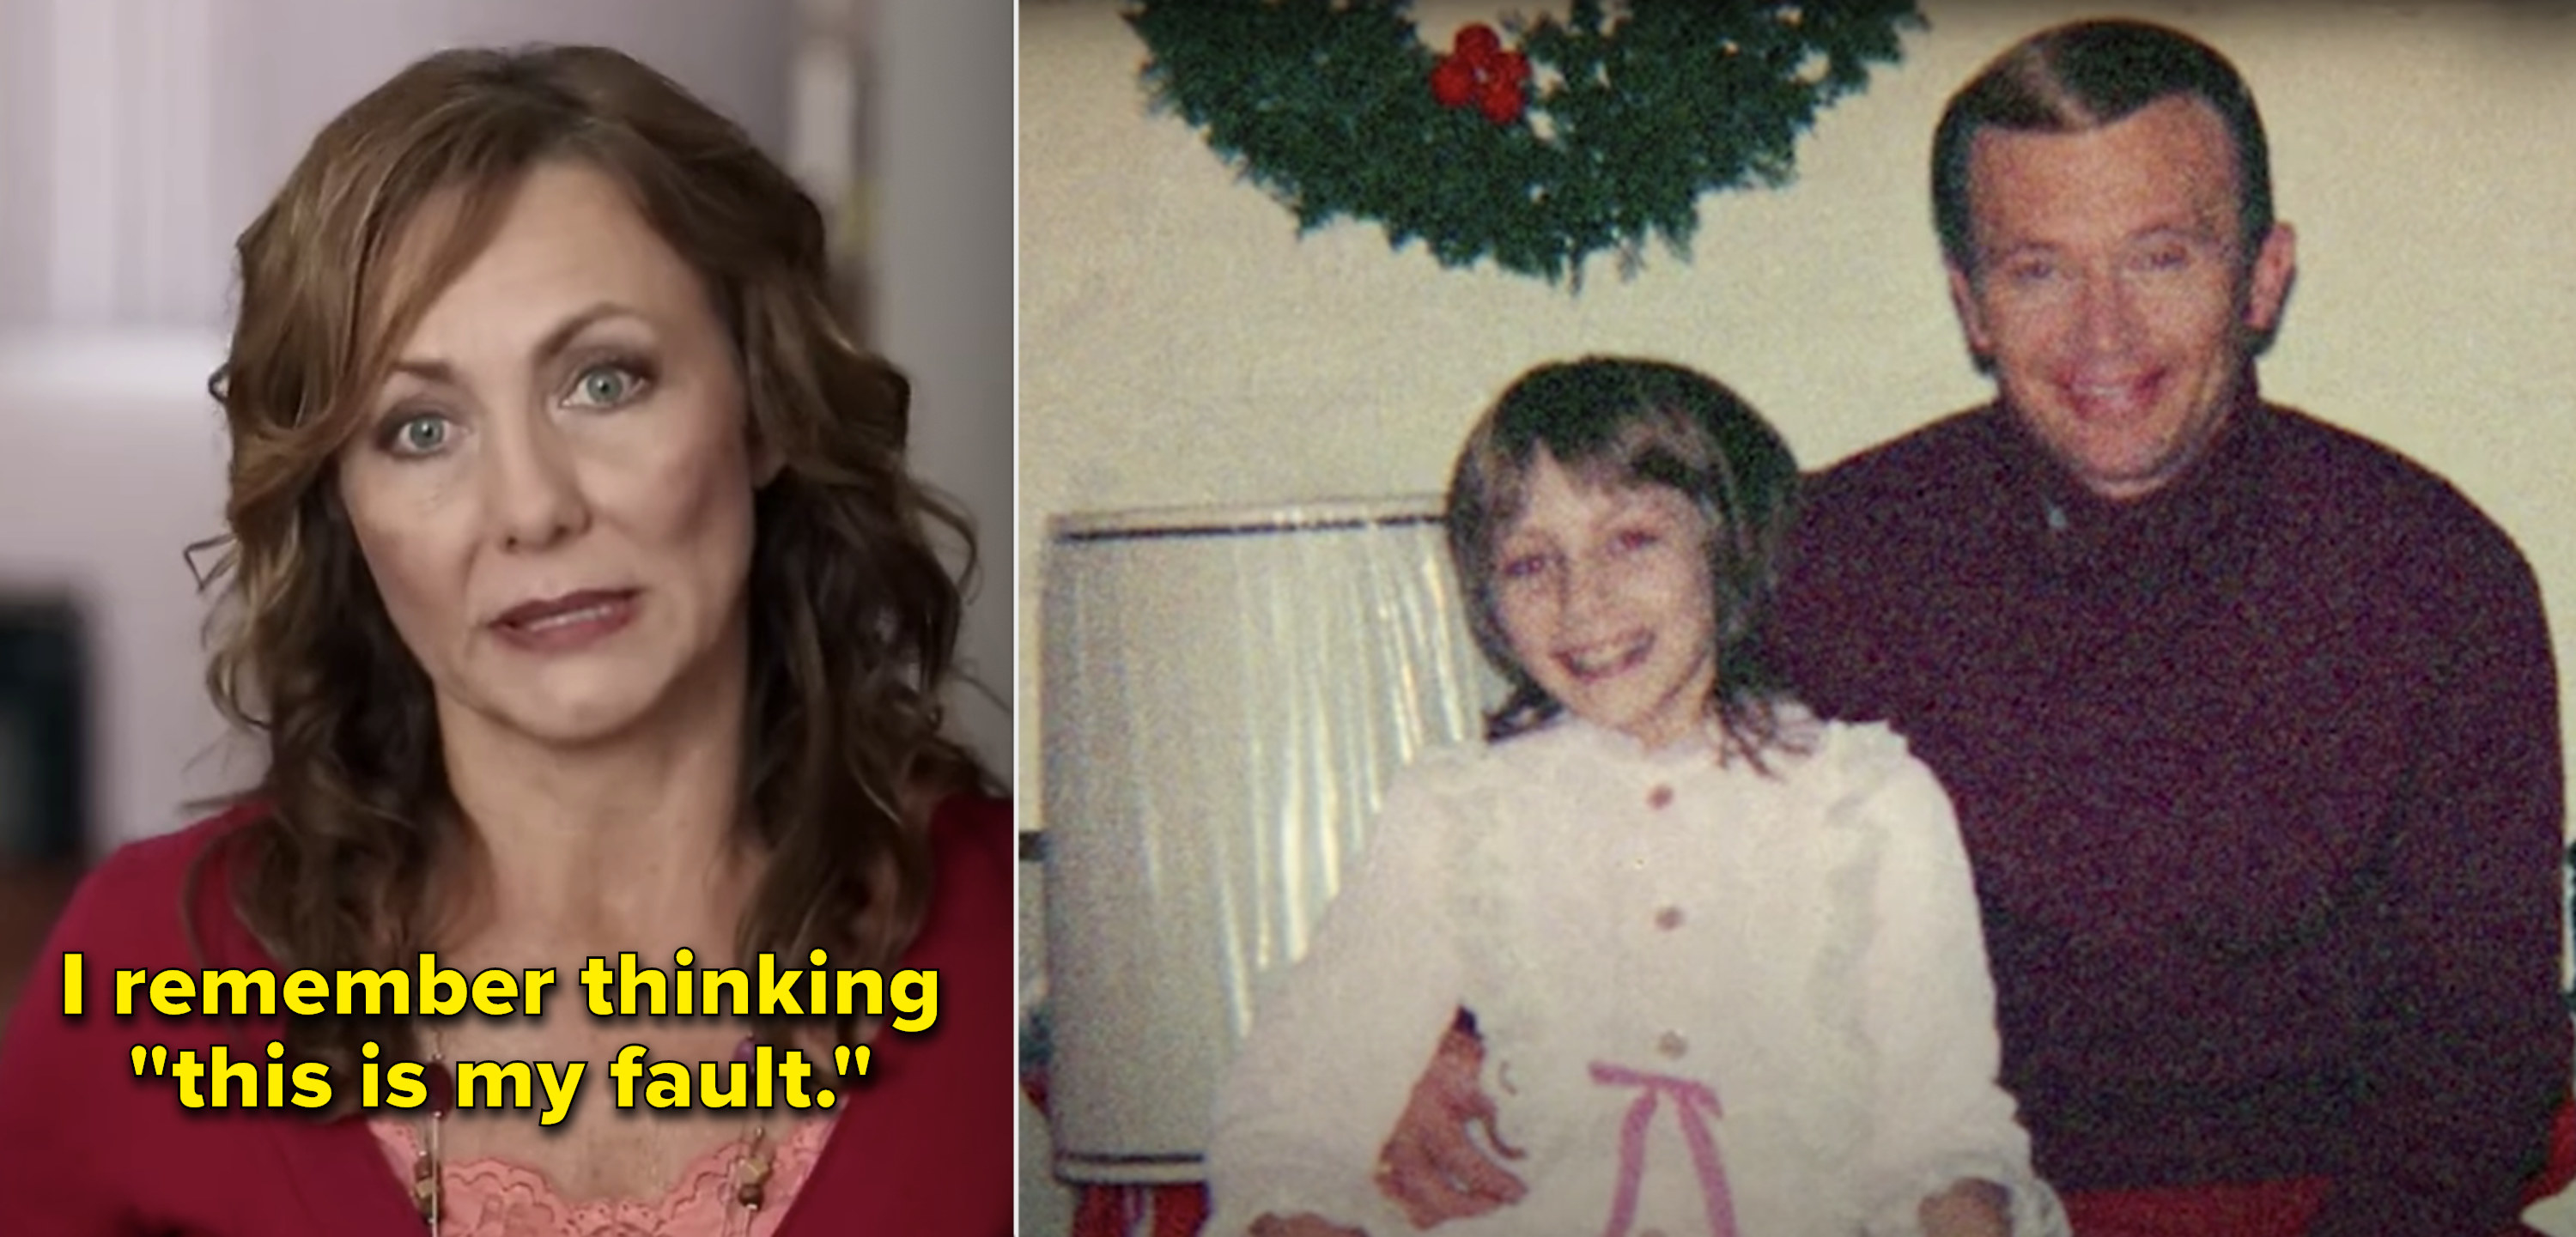 Side-by-side of Jan Broberg, vs. Jan as a kid being photographed with her kidnapper